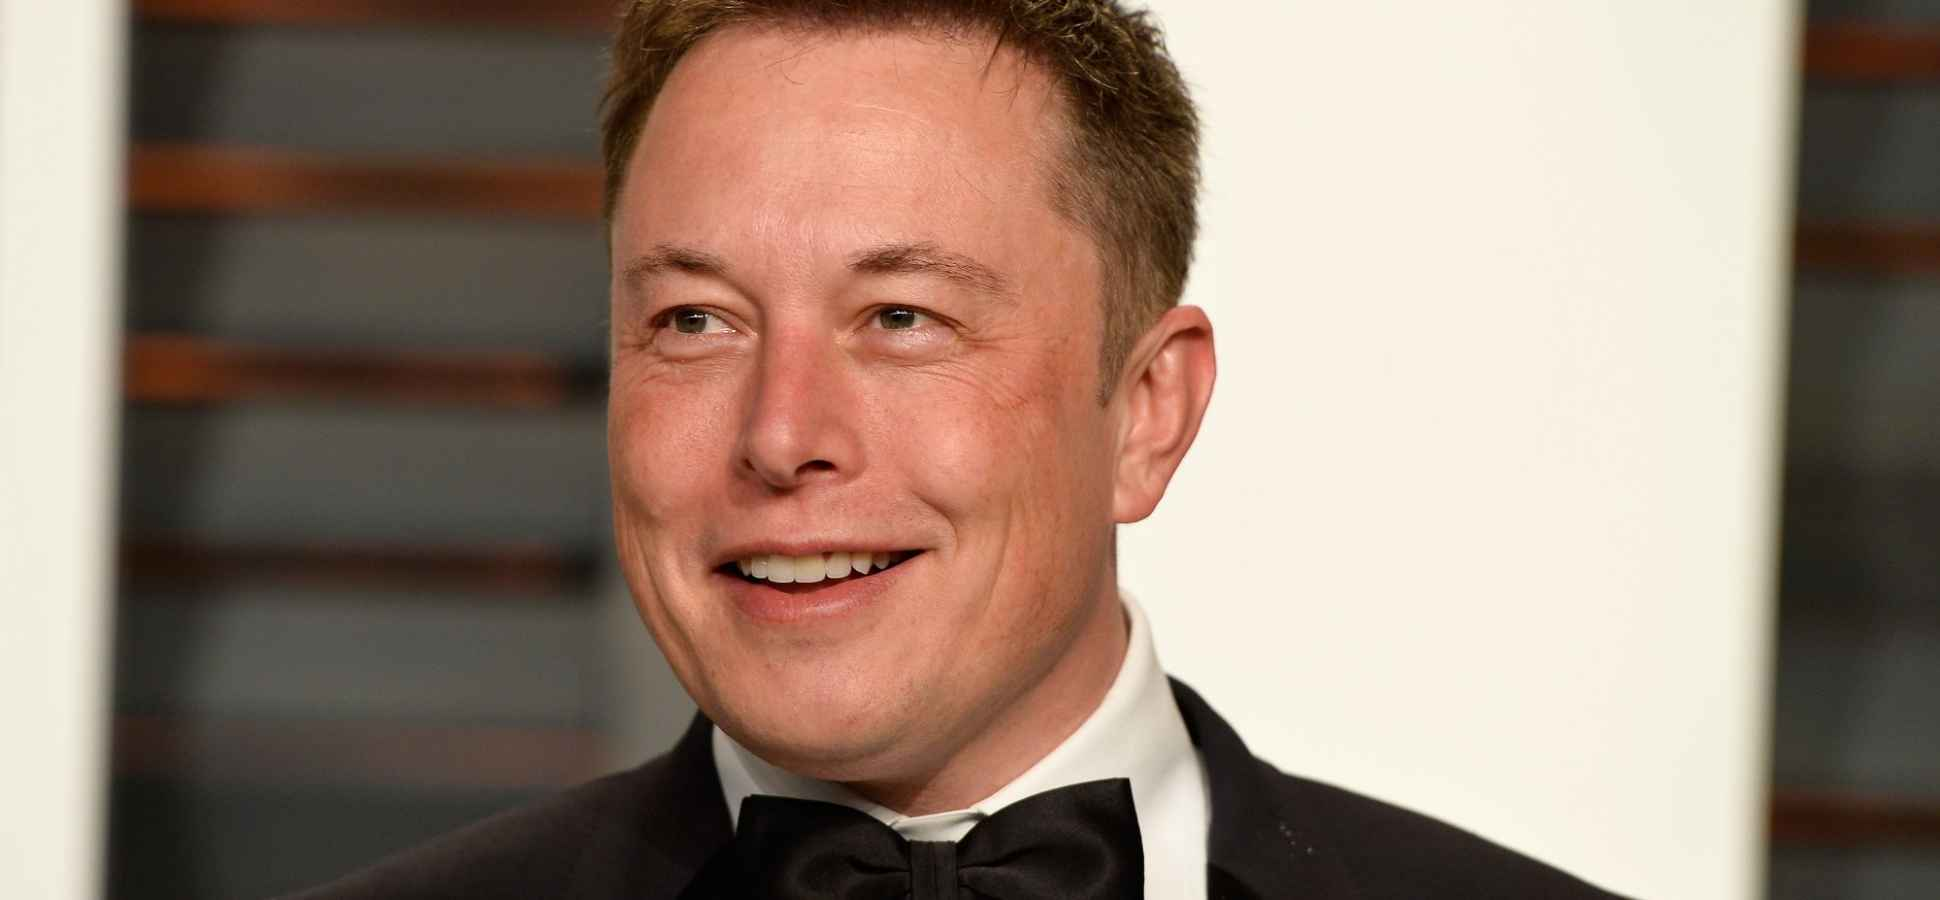 50 Innovation and Success Quotes from SpaceX Founder Elon Musk